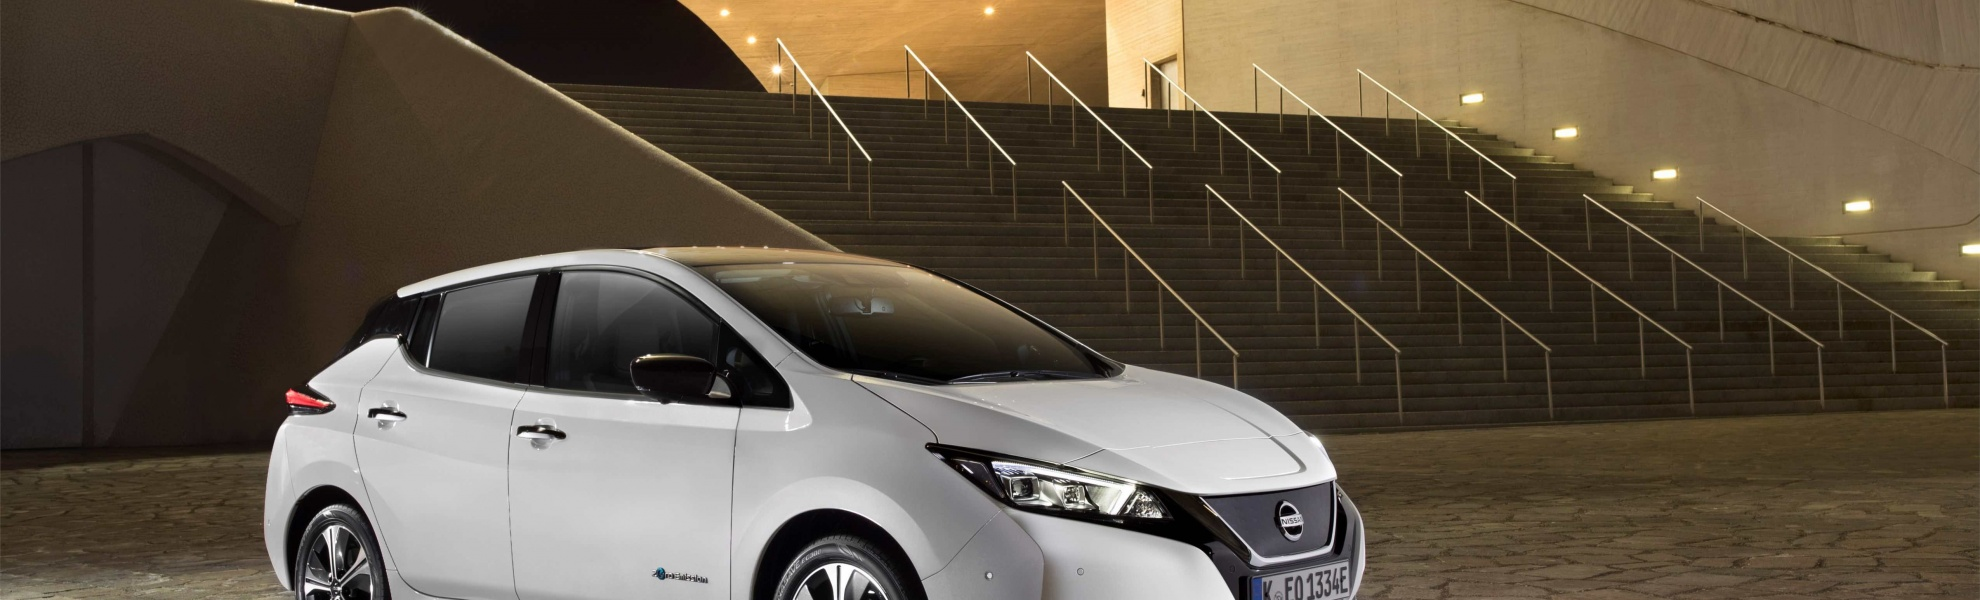 426214105_The new Nissan LEAF_ the world's best-selling zero-emissions electric vehic.jpg